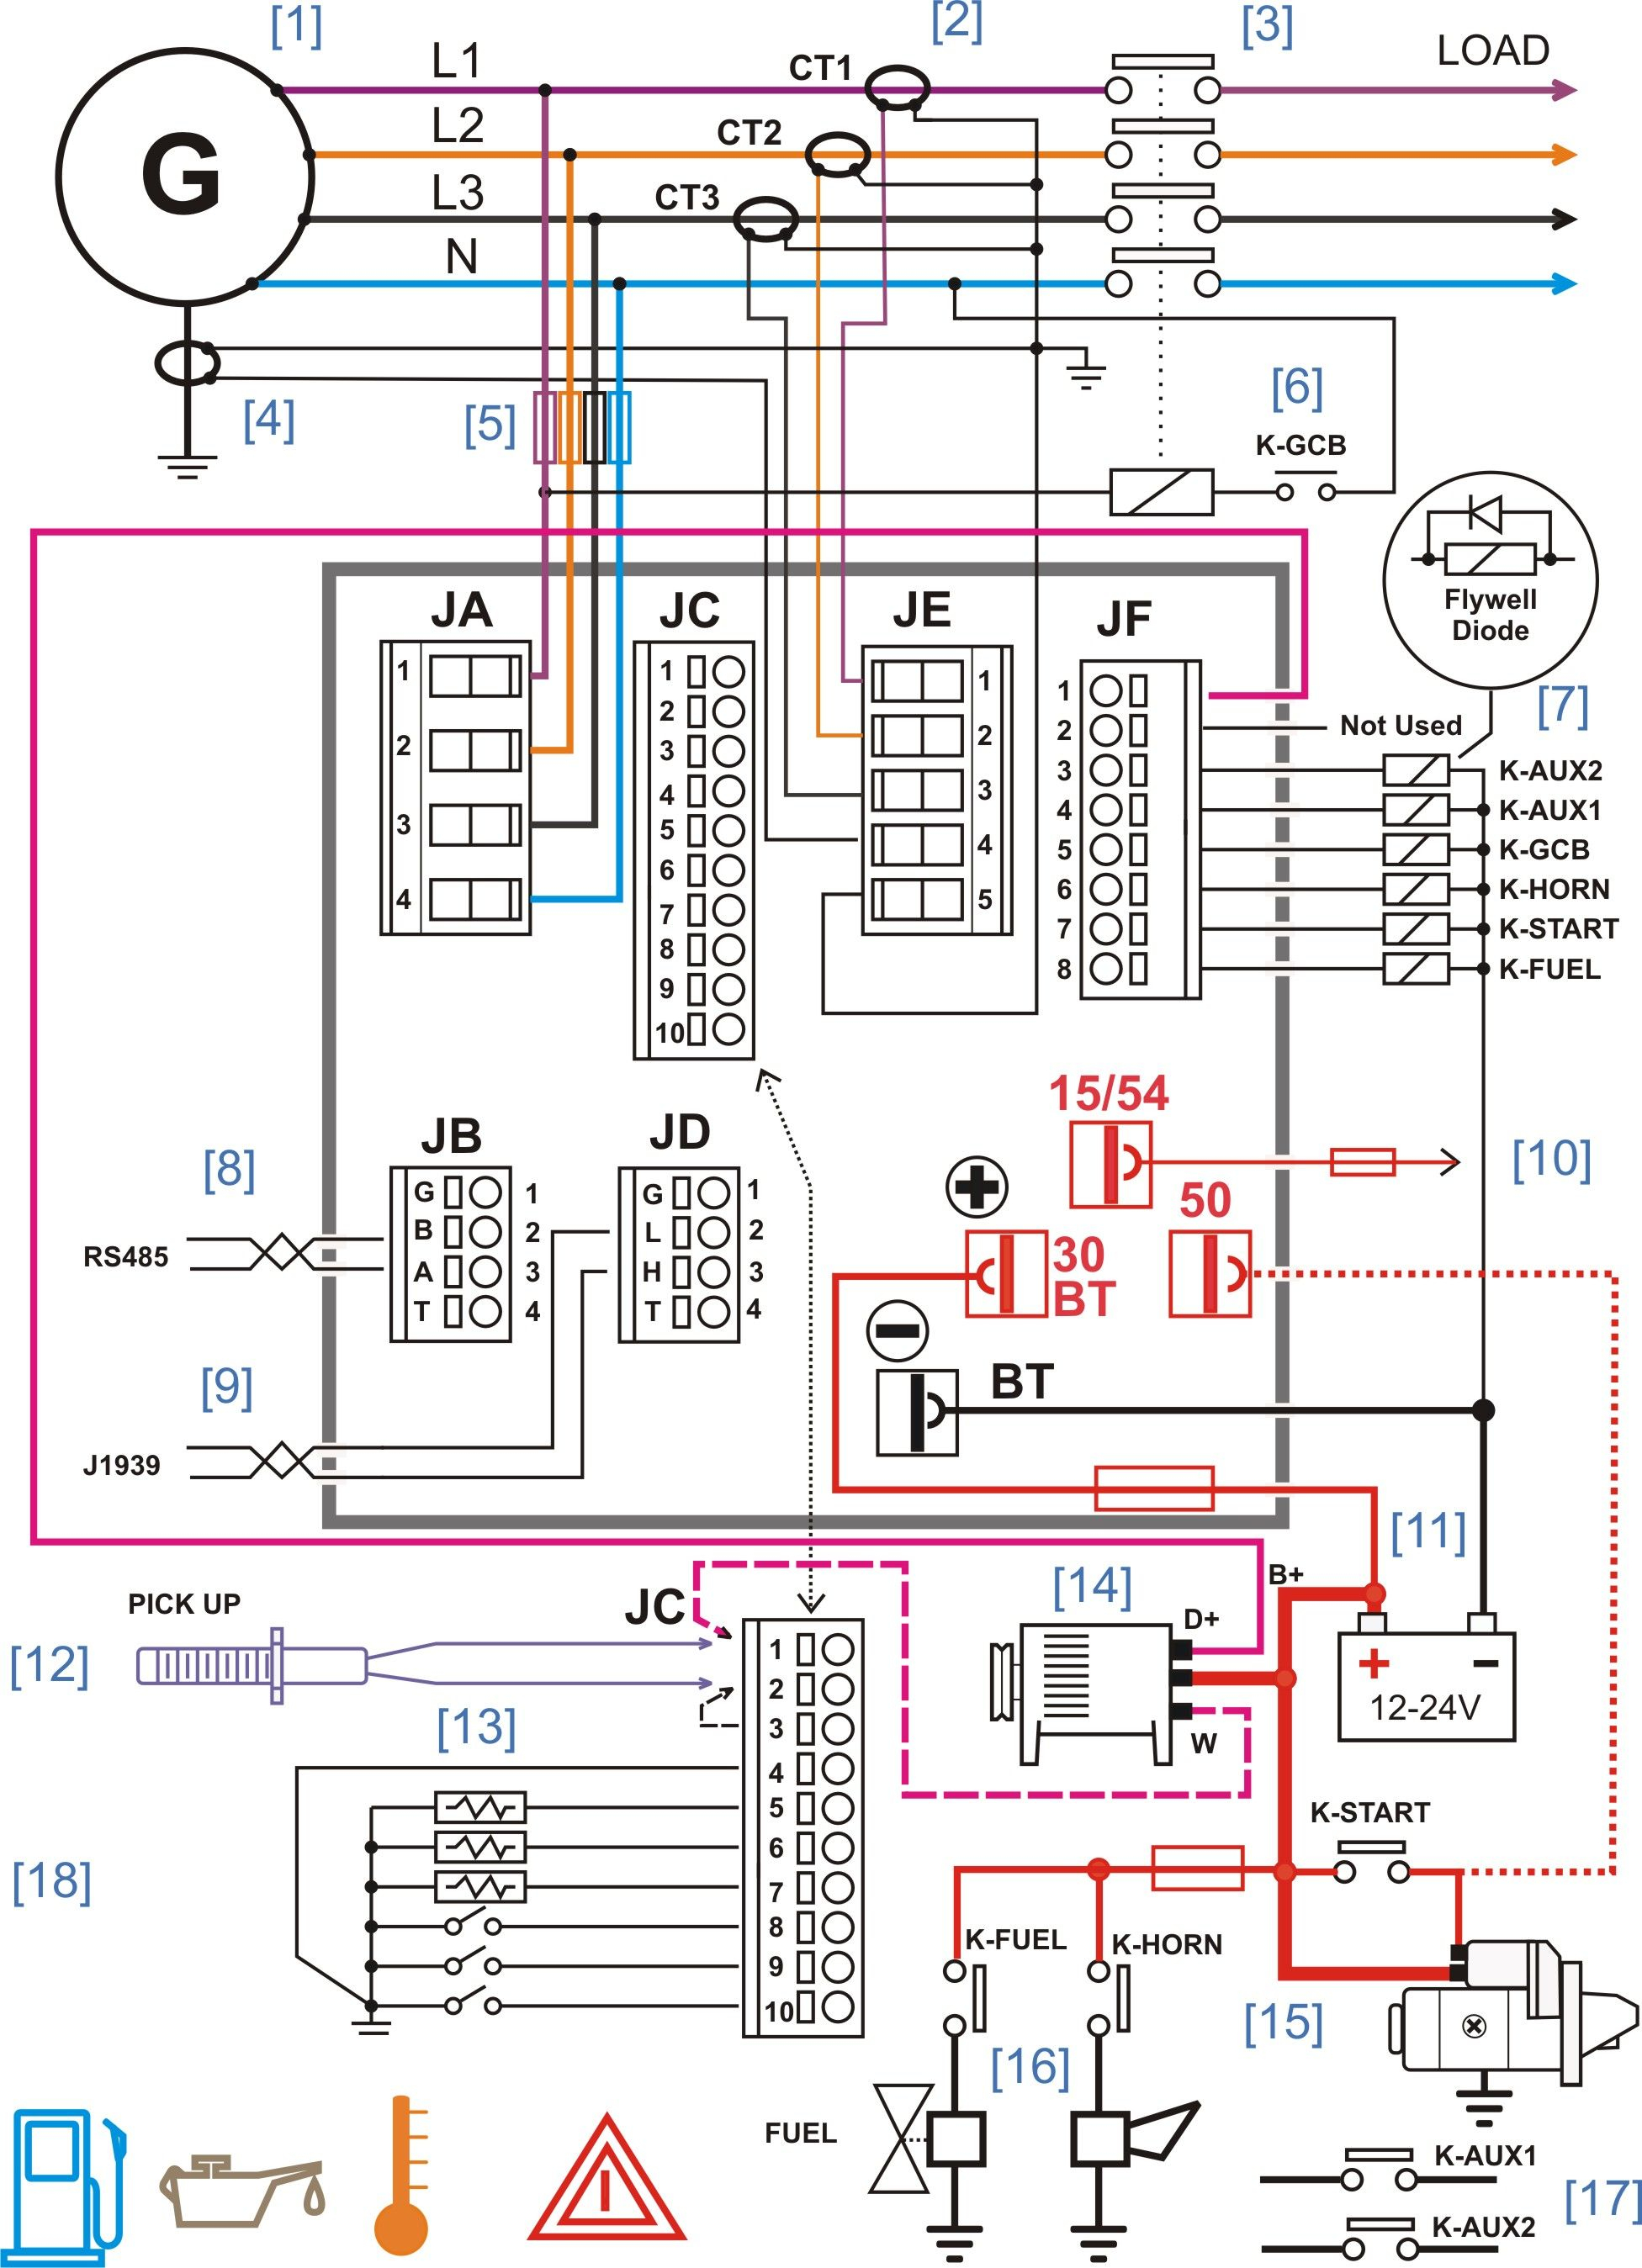 whole house transfer switch wiring diagram Download-Diesel Generator Control Panel Wiring Diagram 12-m